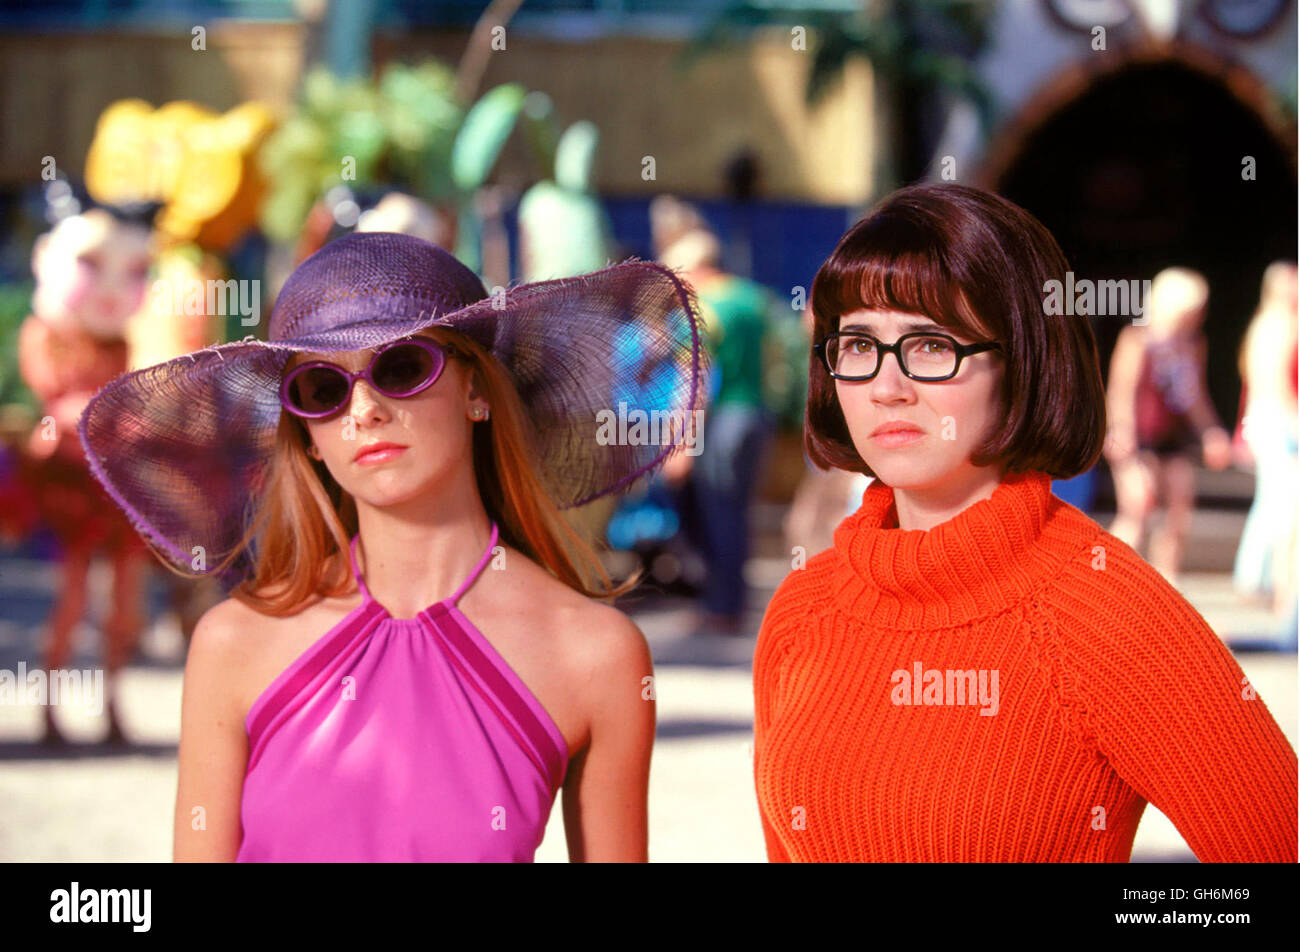 Daphne Velma Scooby Doo High Resolution Stock Photography And Images Alamy